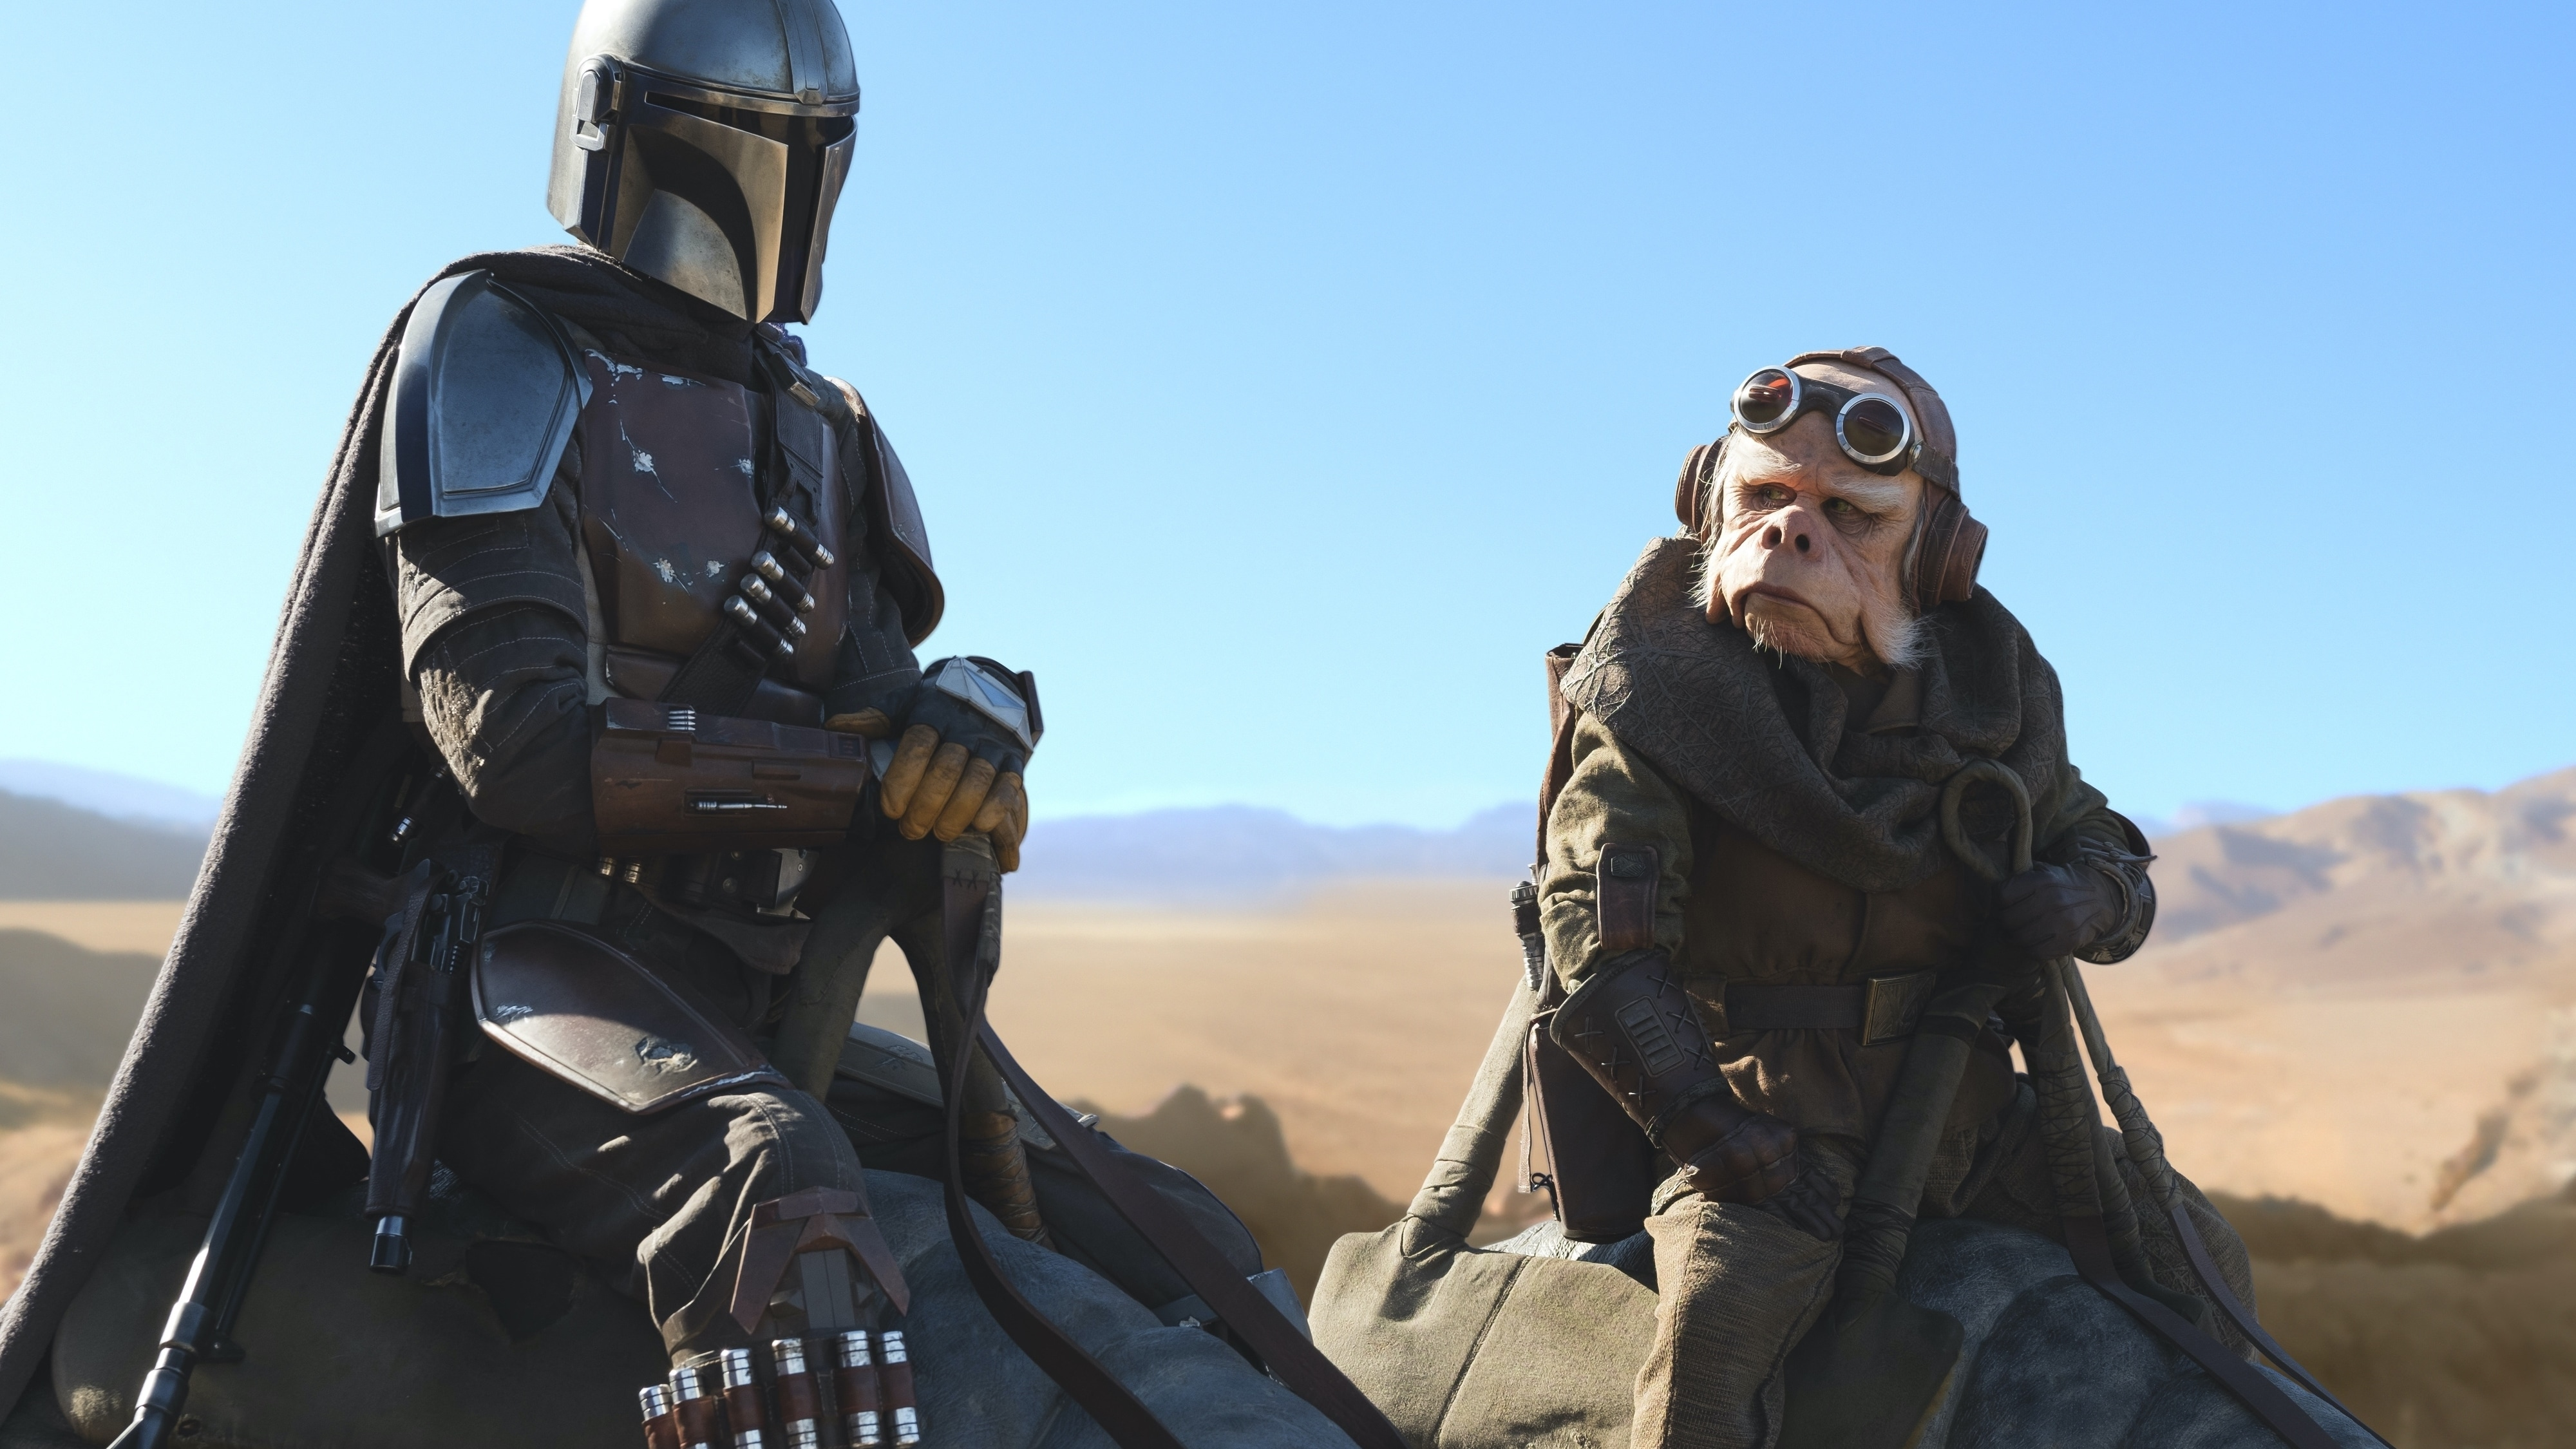 Pedro Pascal is the Mandalorian and Nick Nolte is Kuiil in THE MANDALORIAN, exclusively on Disney+